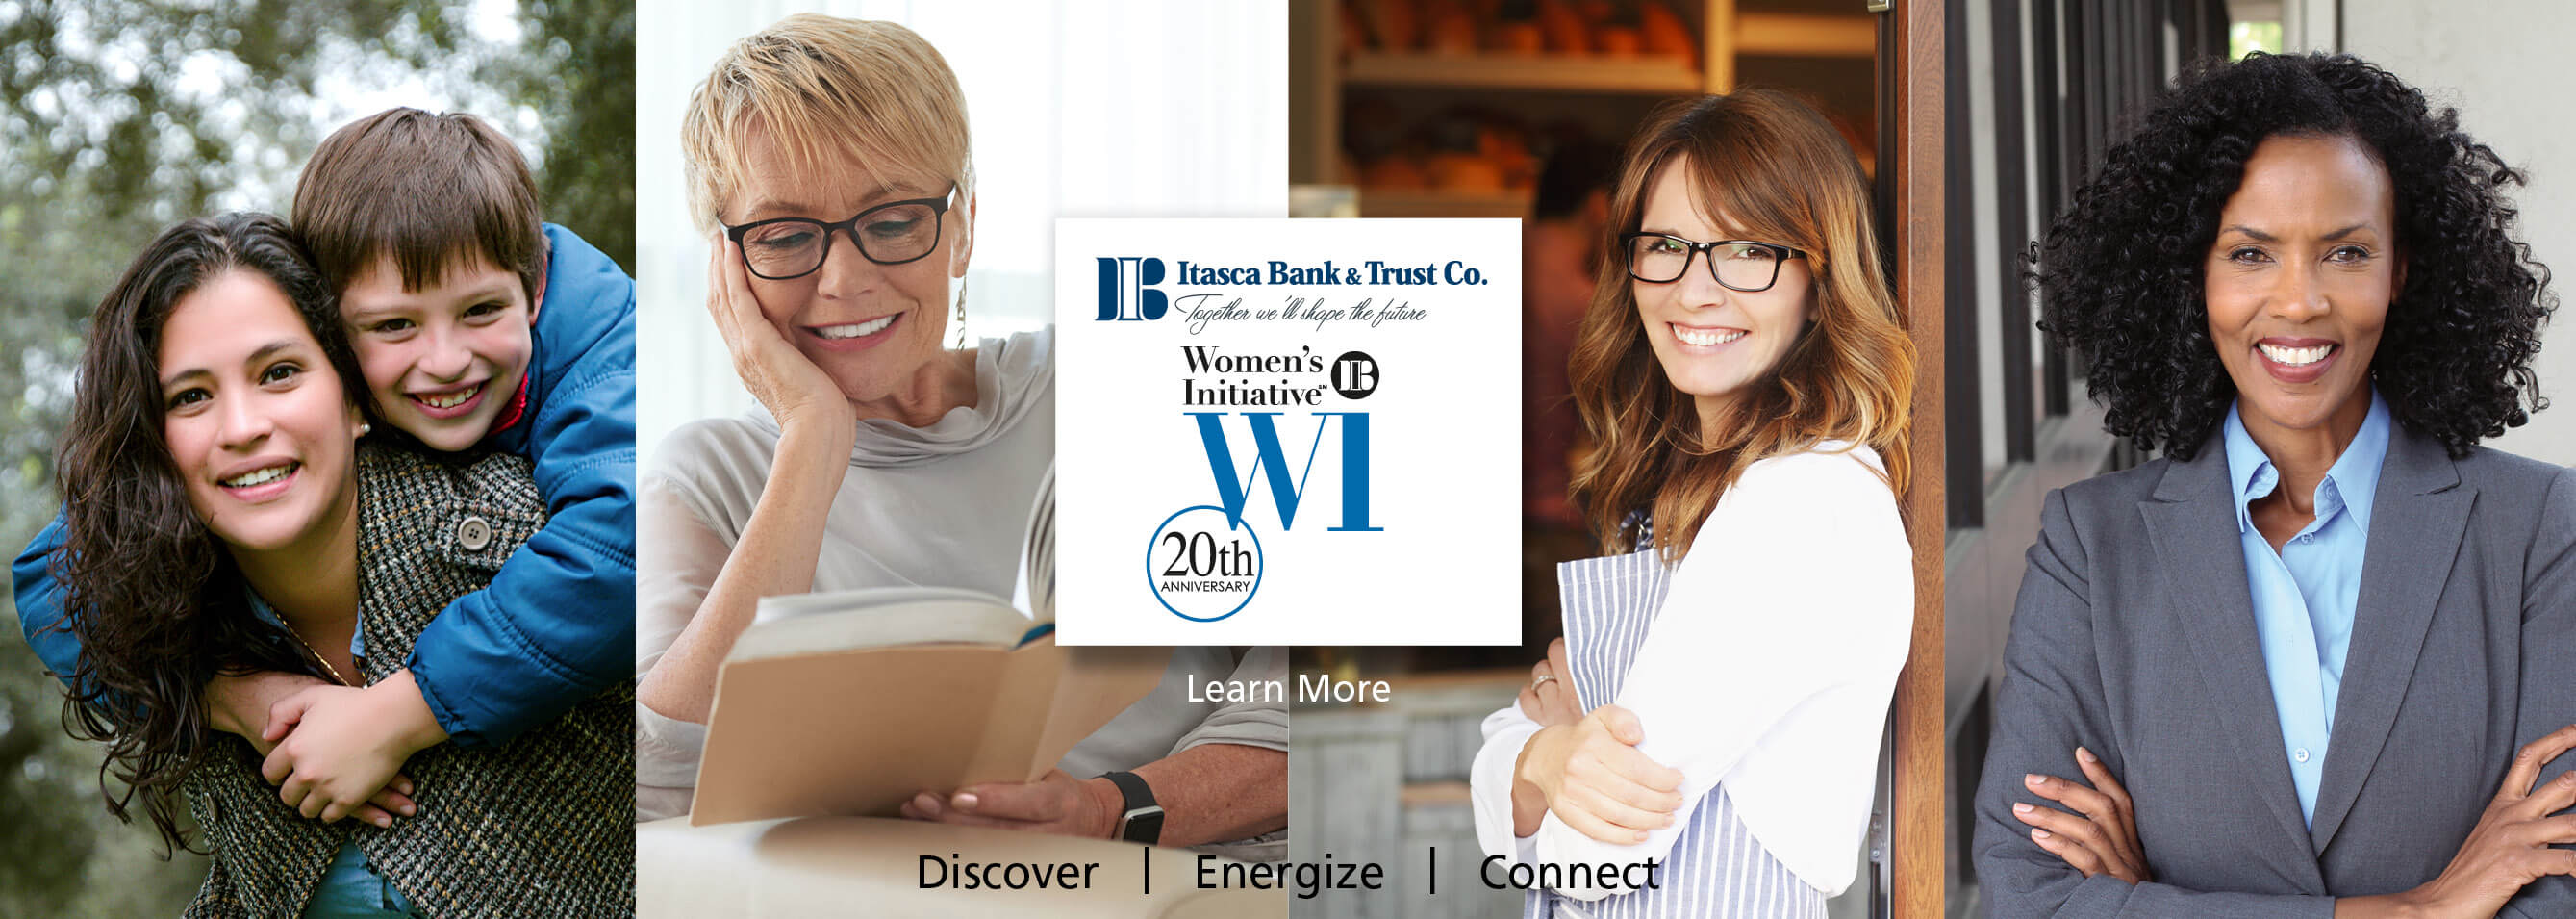 Itsaca Bank & Trust Co. Woman's Initiative. Discover - Energize - Connect. Learn More